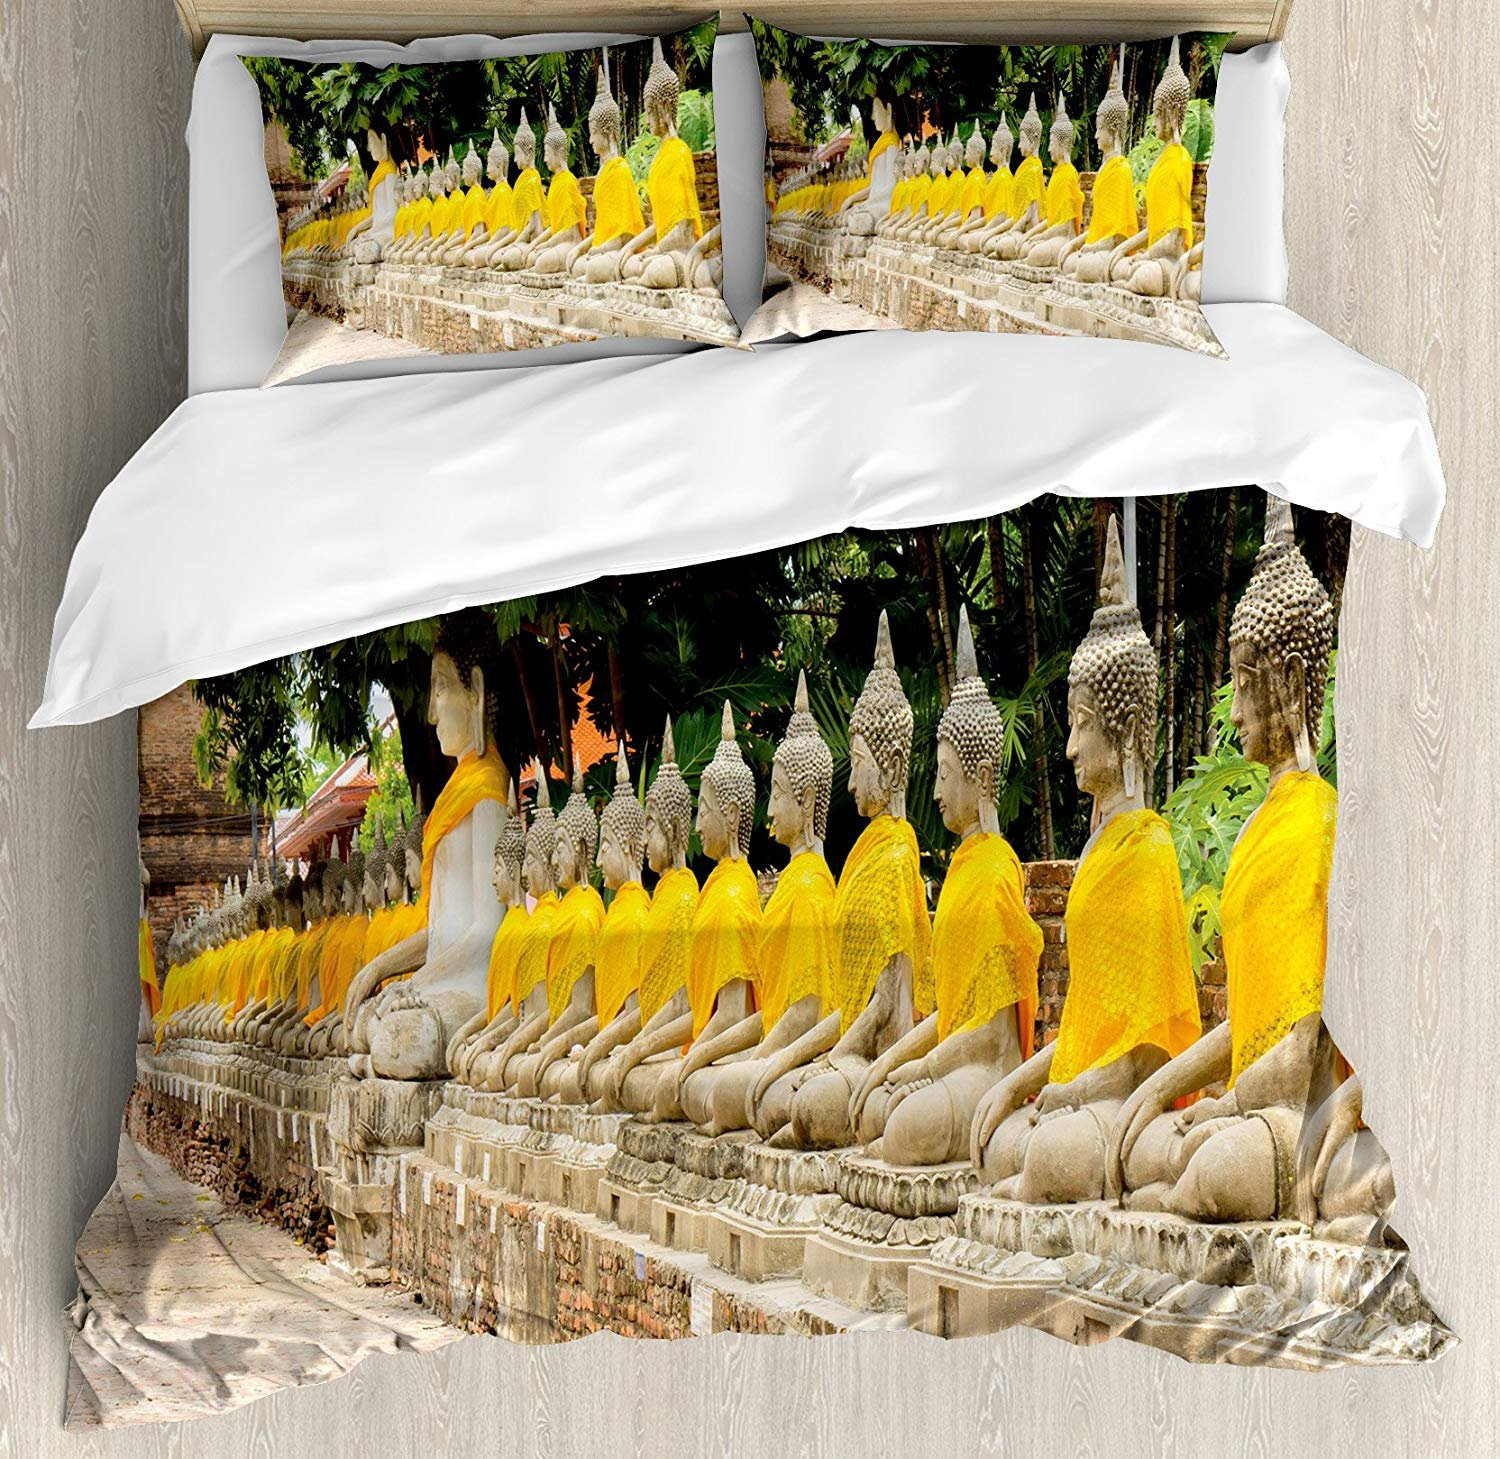 Asian Decor Twin Duvet Cover Sets 4 Piece Bedding Set Bedspread with 2 Pillow Sham, Flat Sheet for Adult/Kids/Teens, Picture of Religious Statues in Thailand Traditional Thai Home Decor by Family Decor